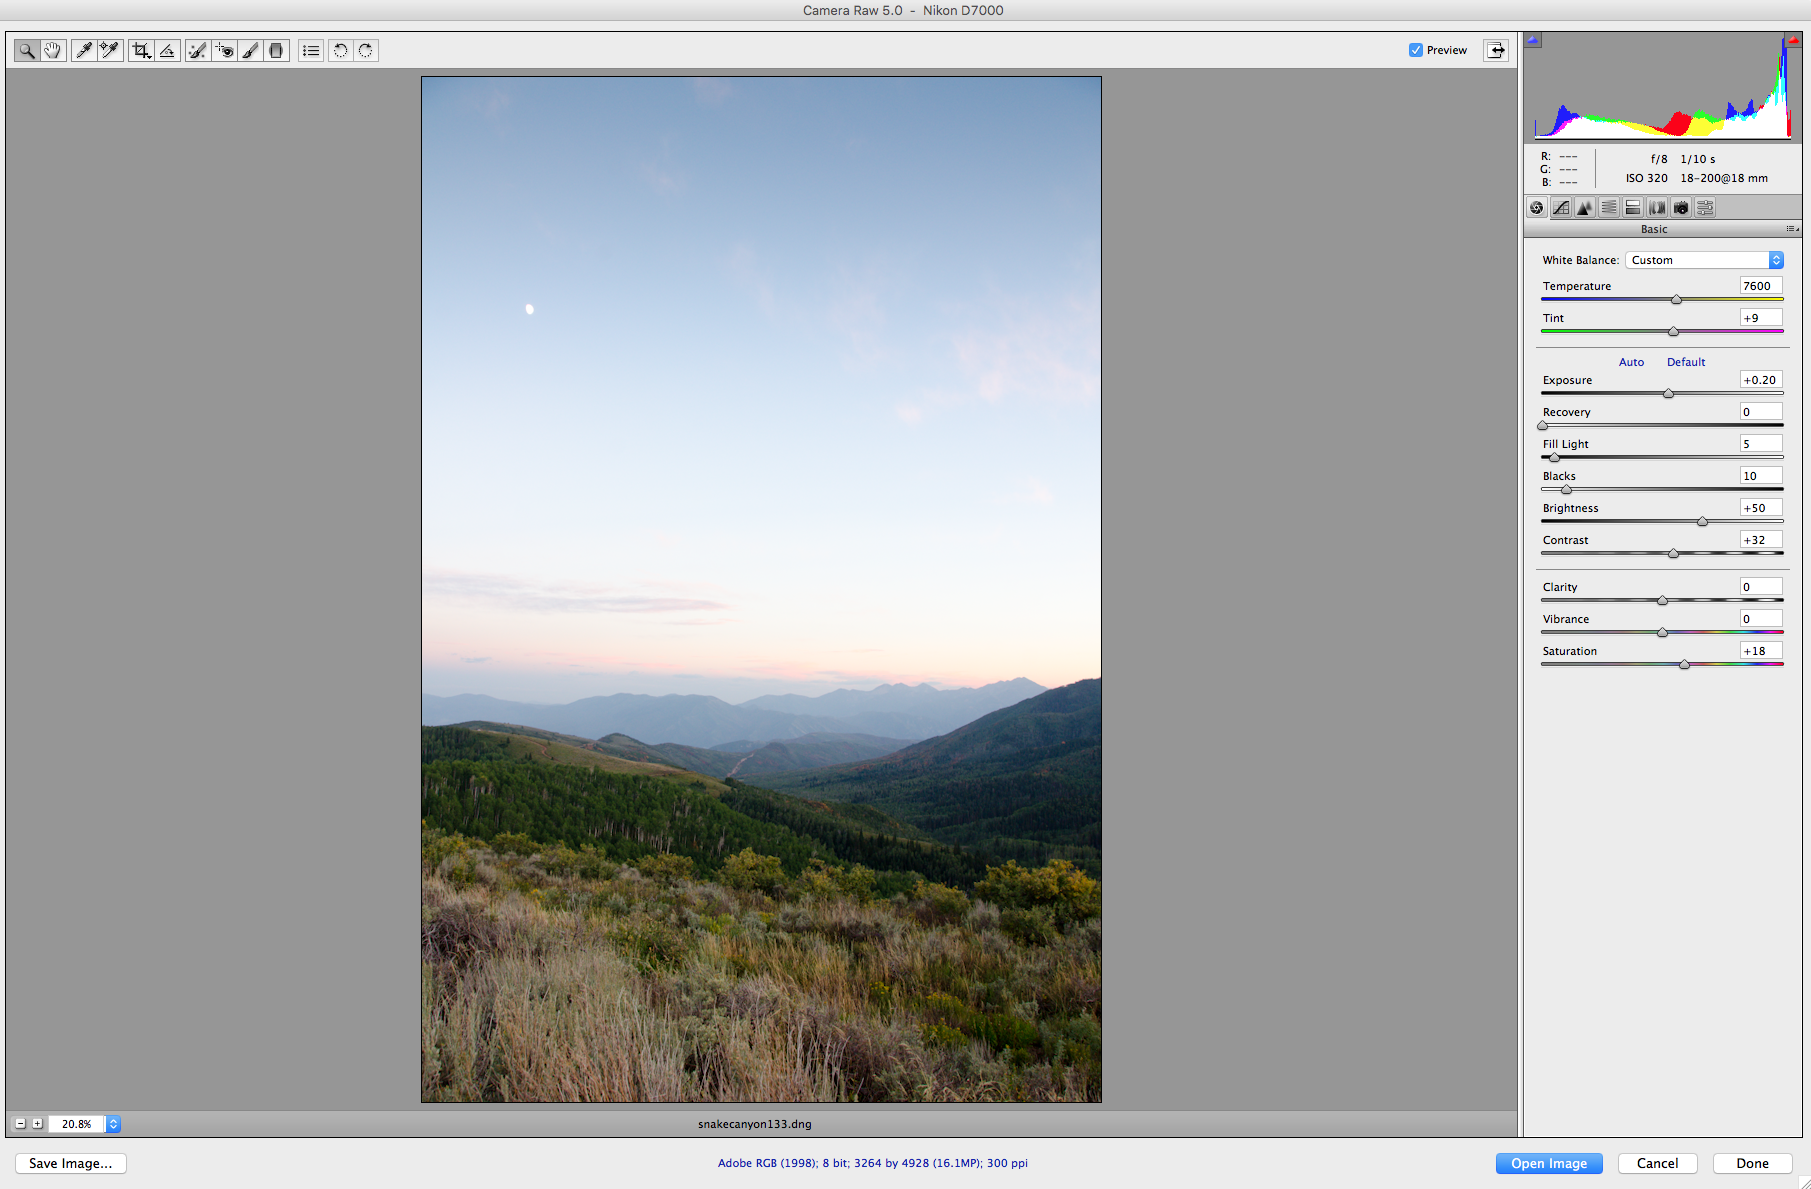 Converting Raw Files in Photoshop - www.mommatography.com